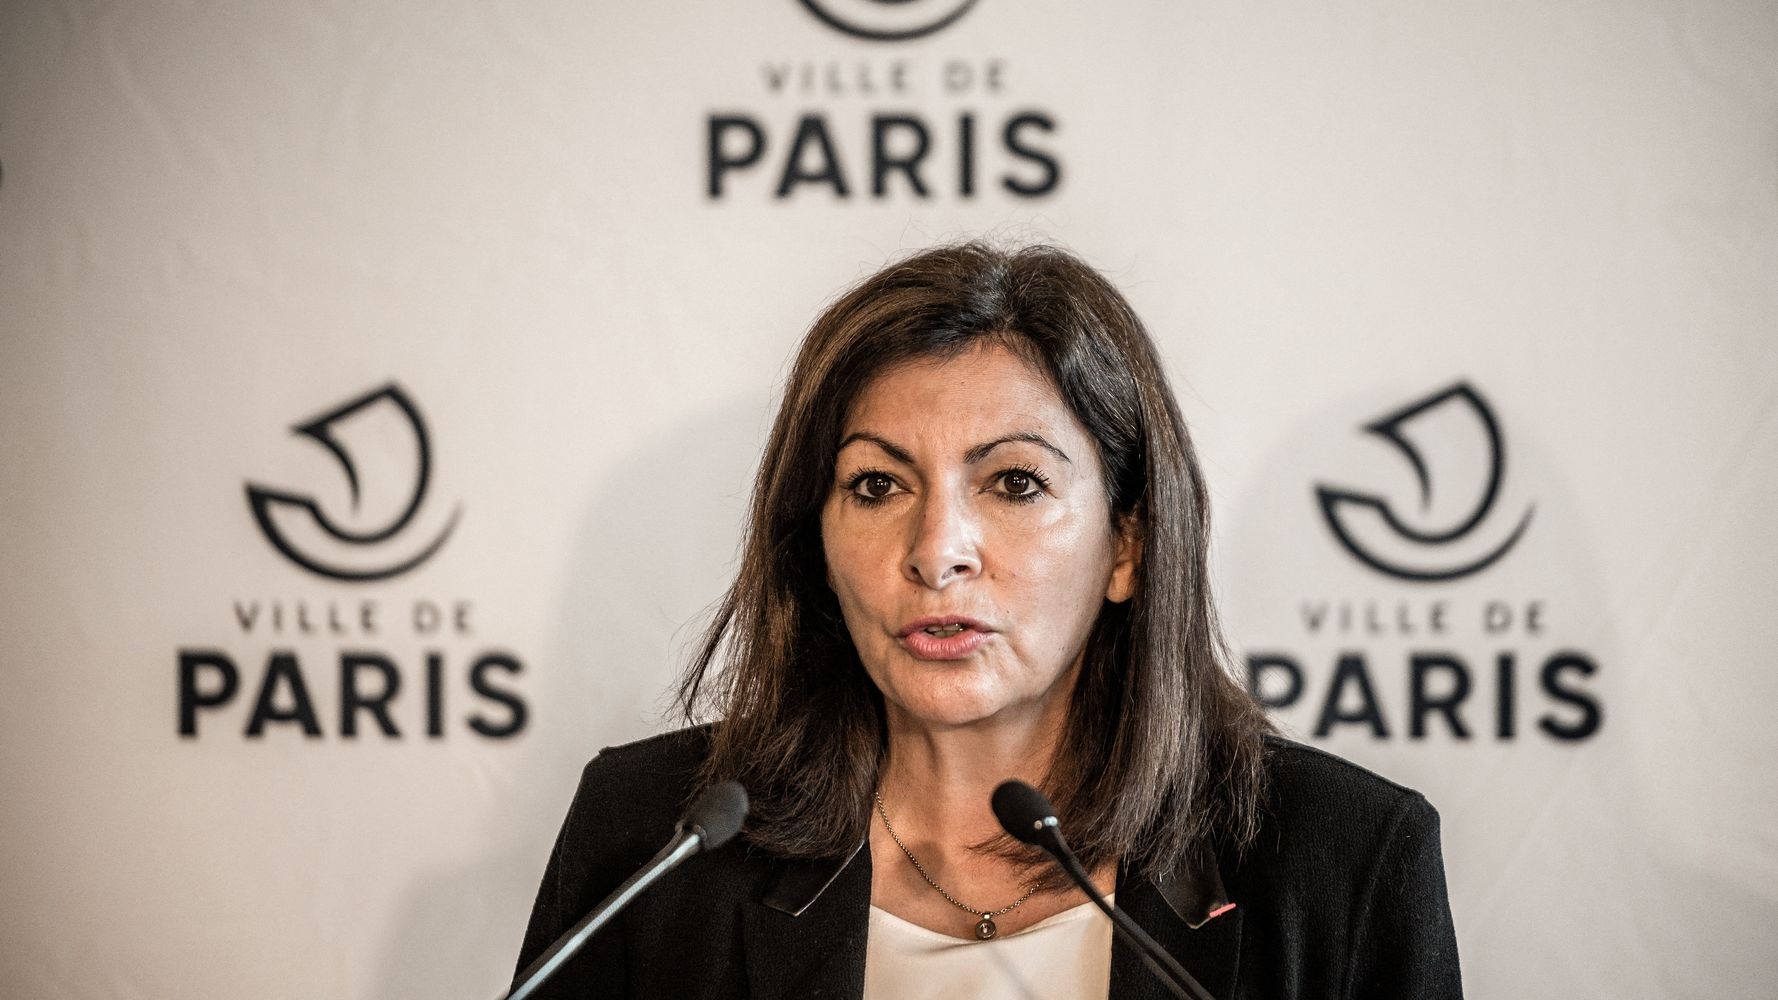 Confinement à Paris: Hidalgo exclut la fermeture des cantines et pose ses conditions